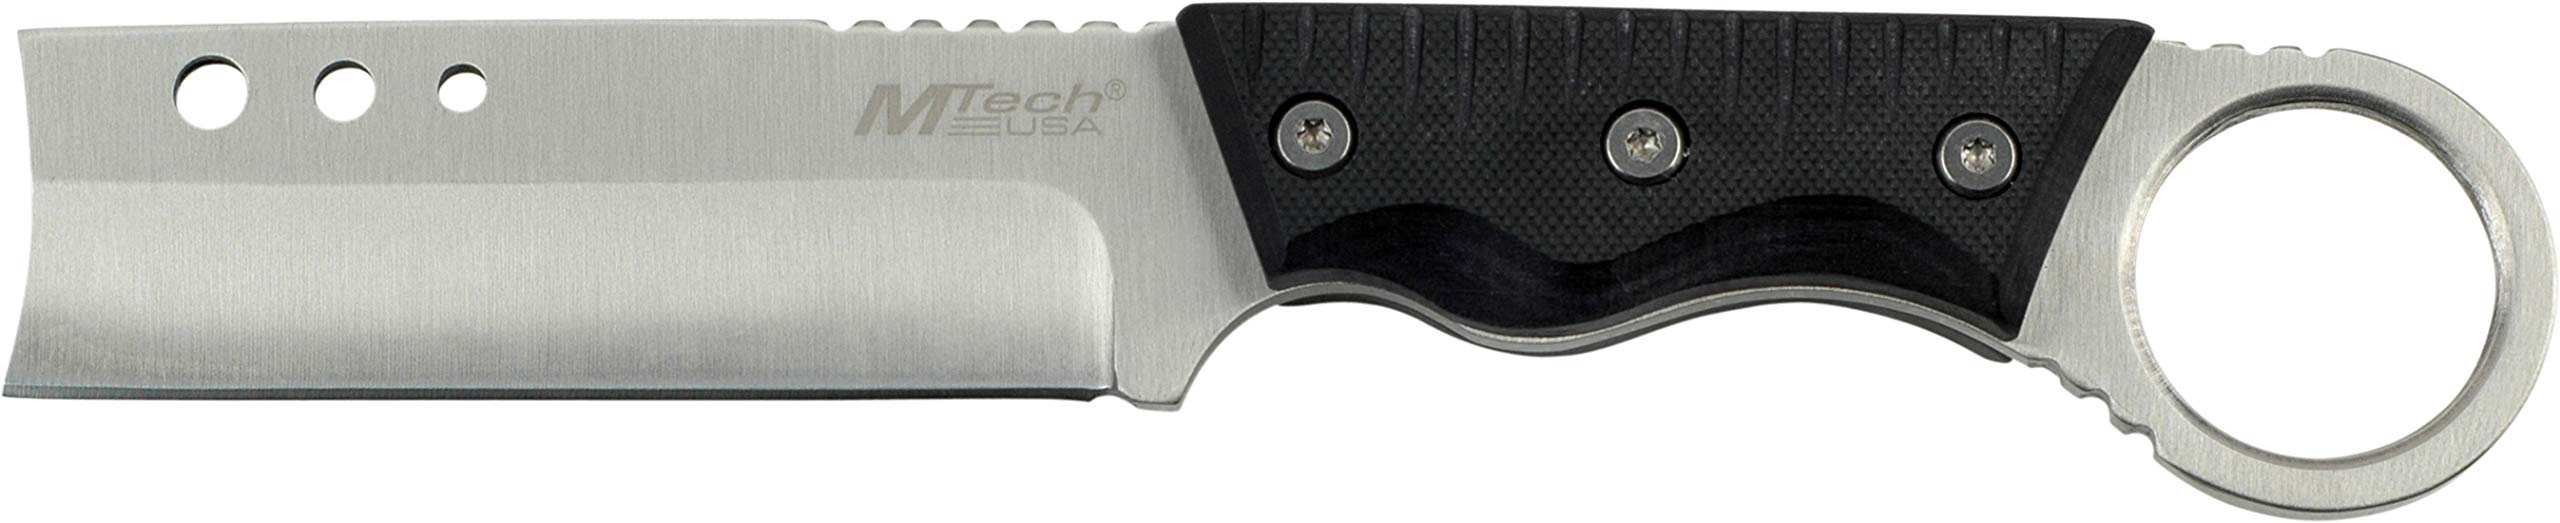 MTECH USA MT-20-25S Fixed Blade Knife, 8-Inch Overall